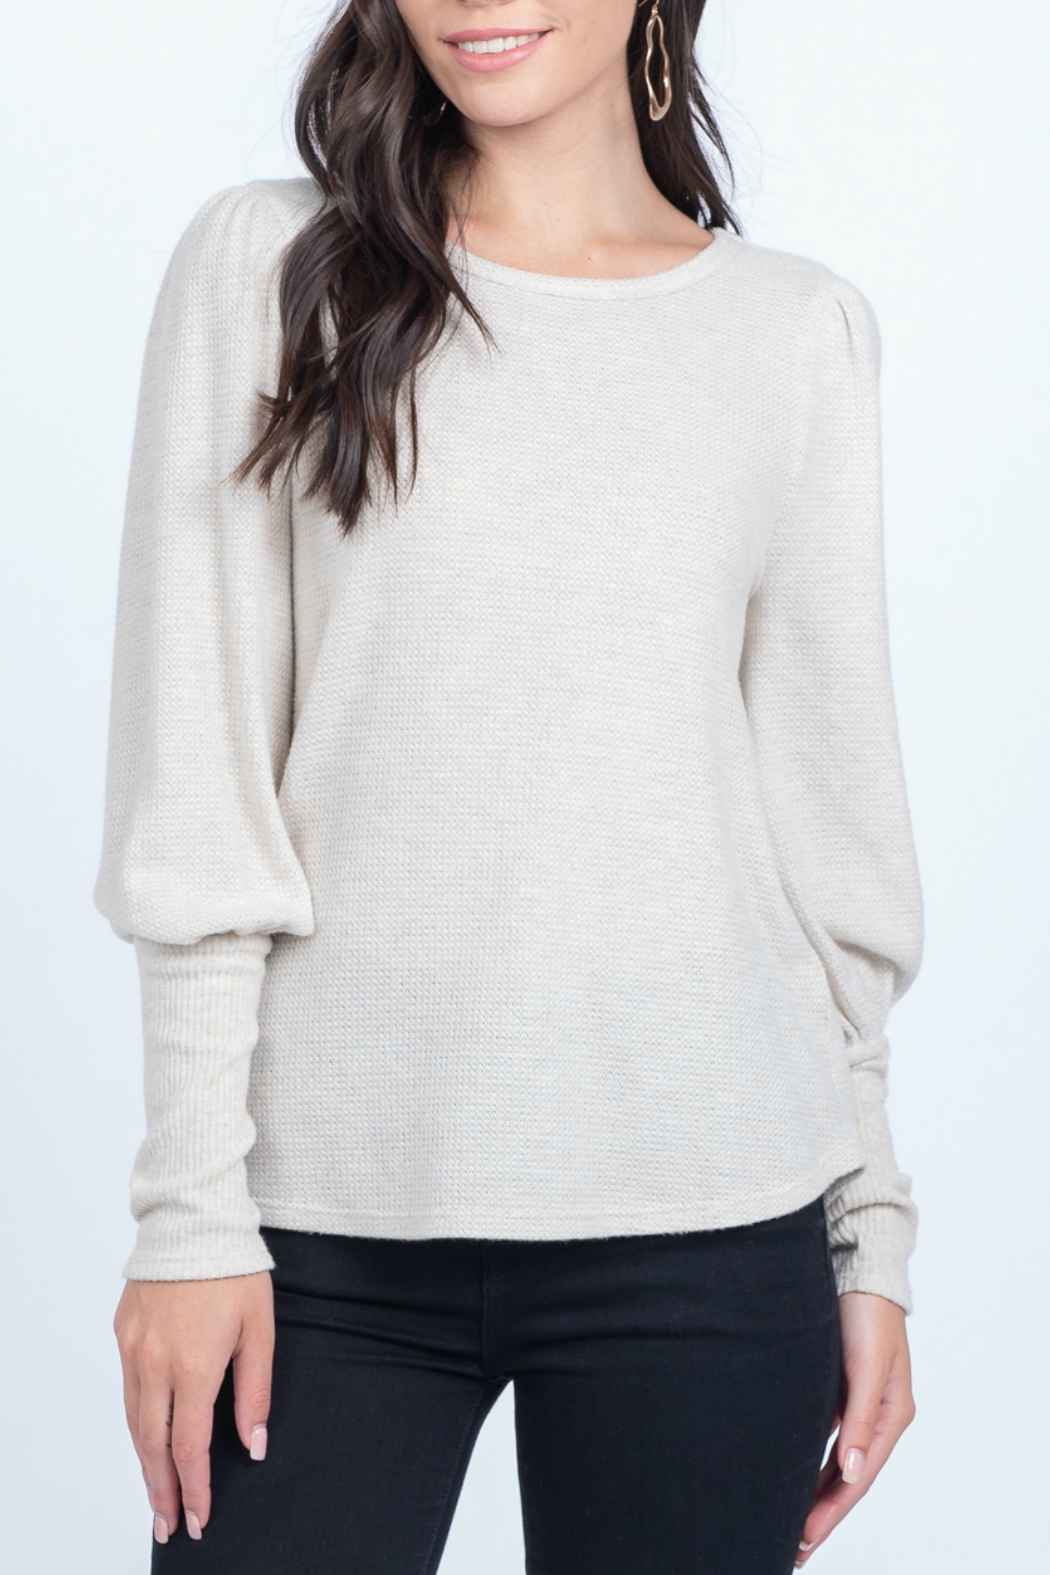 Everly Knit top with cuff detail - Side Cropped Image